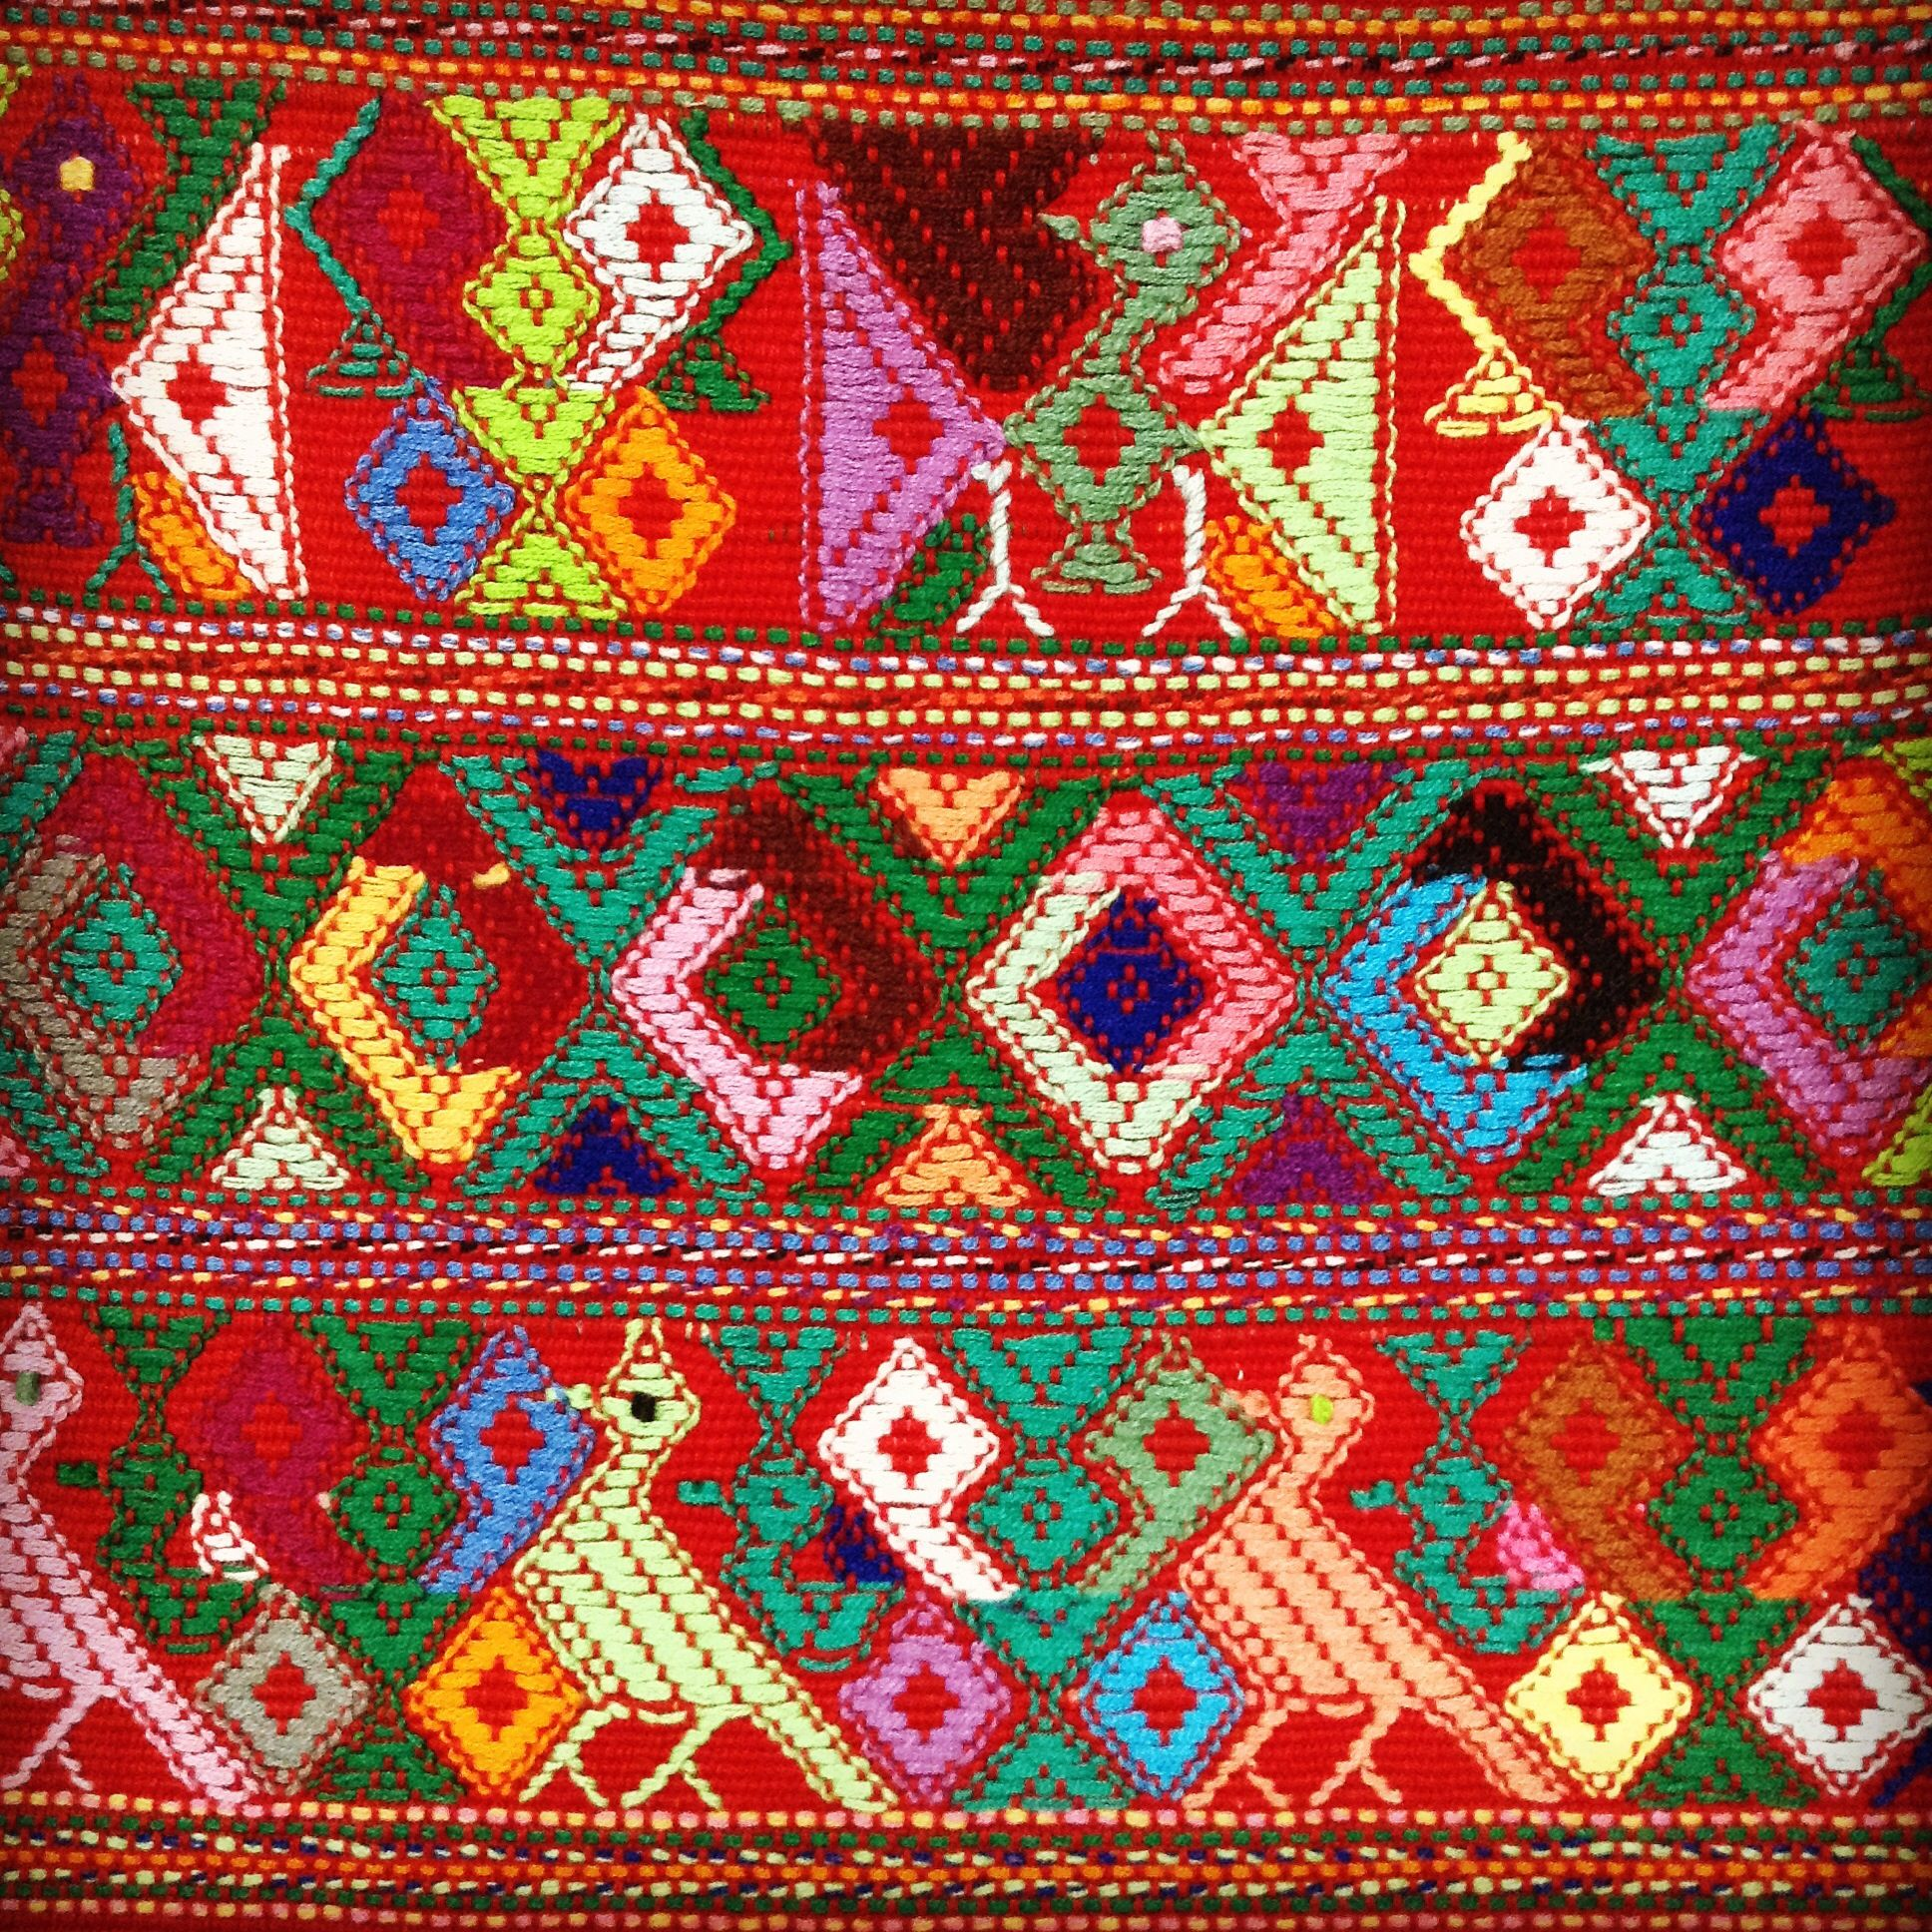 Ecuador Fabric  Google Search - Ecuador - Pinterest -